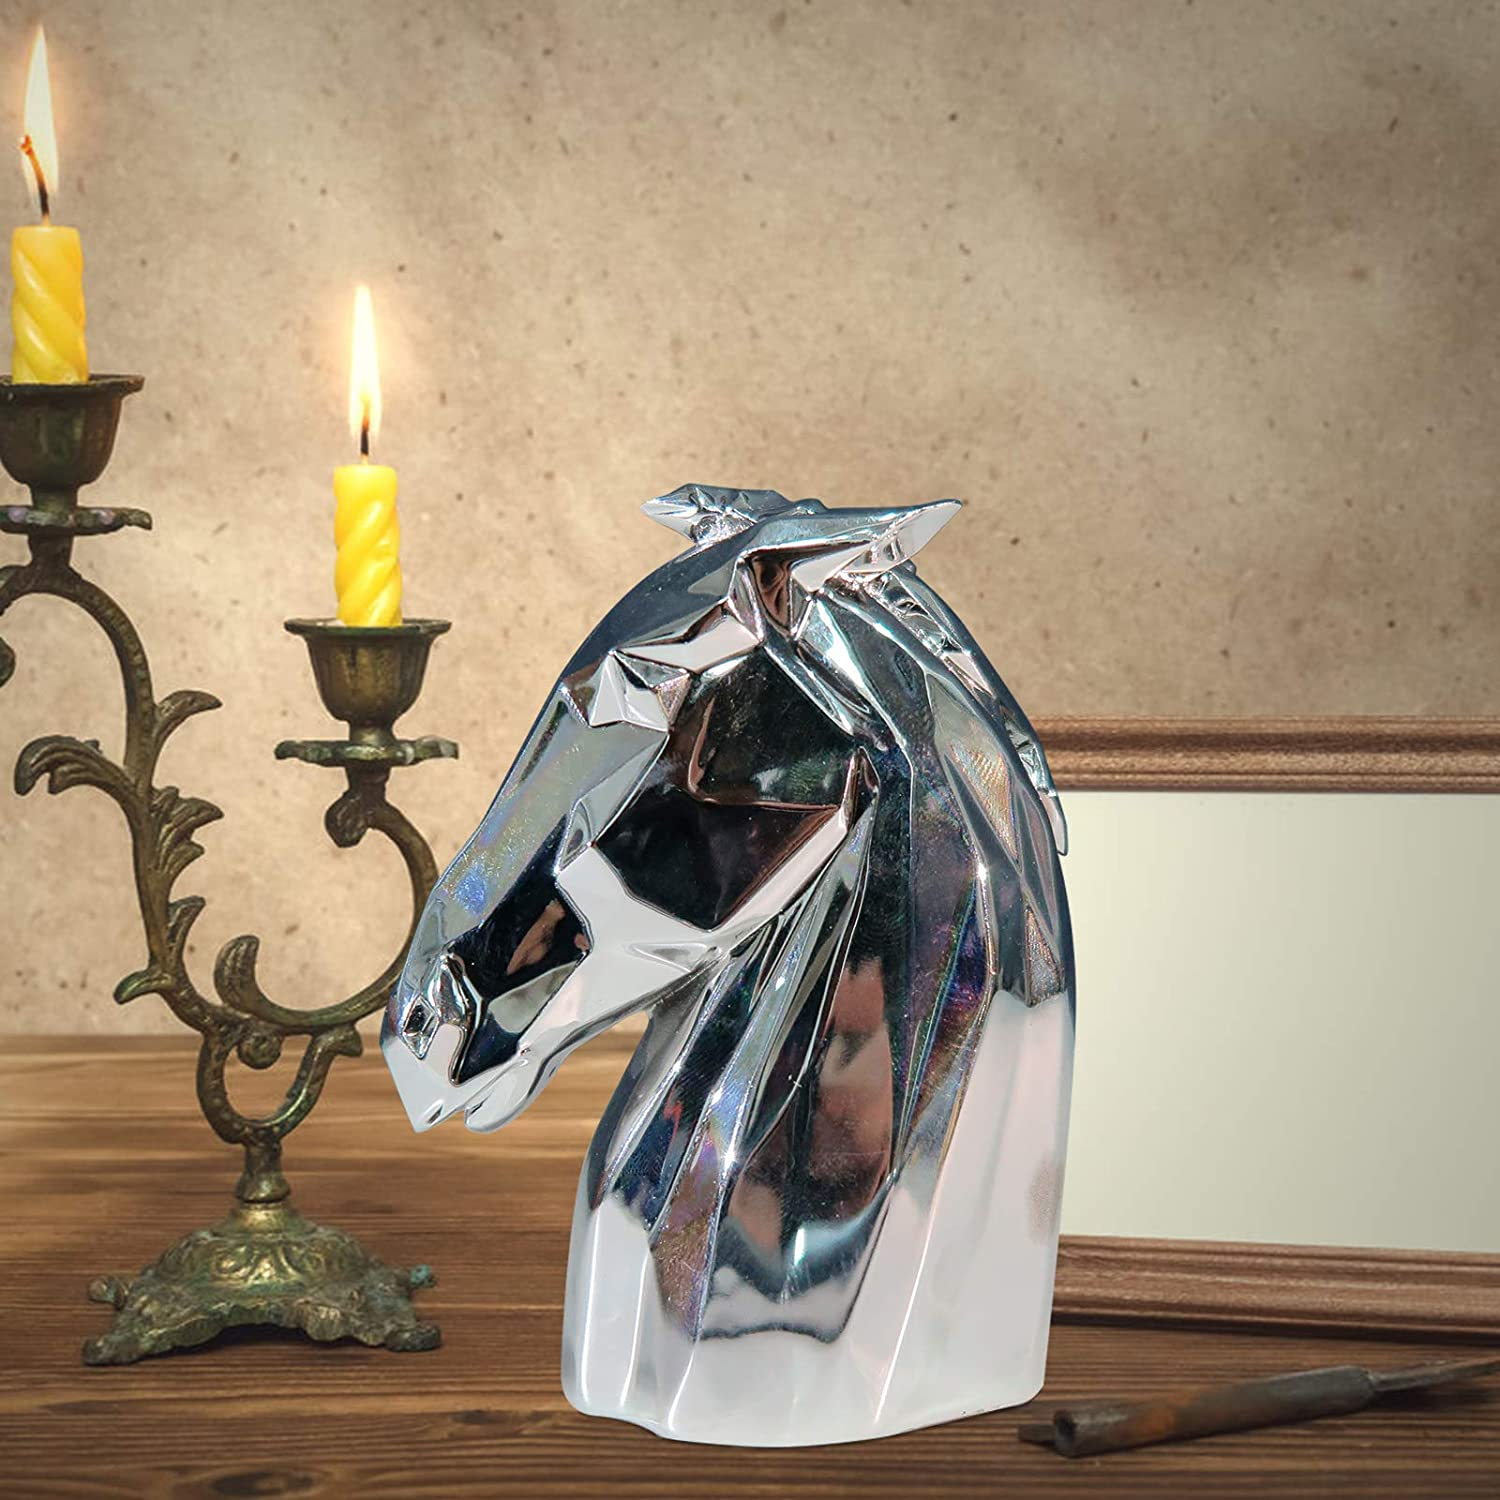 LARTISO DECO Creative Modern Style Horse Head Statue Decoration Animal Decoration Sculpture Craft Resin Horse Head Sculpture Art Ornaments Decoration for Office Home Decor, Silver